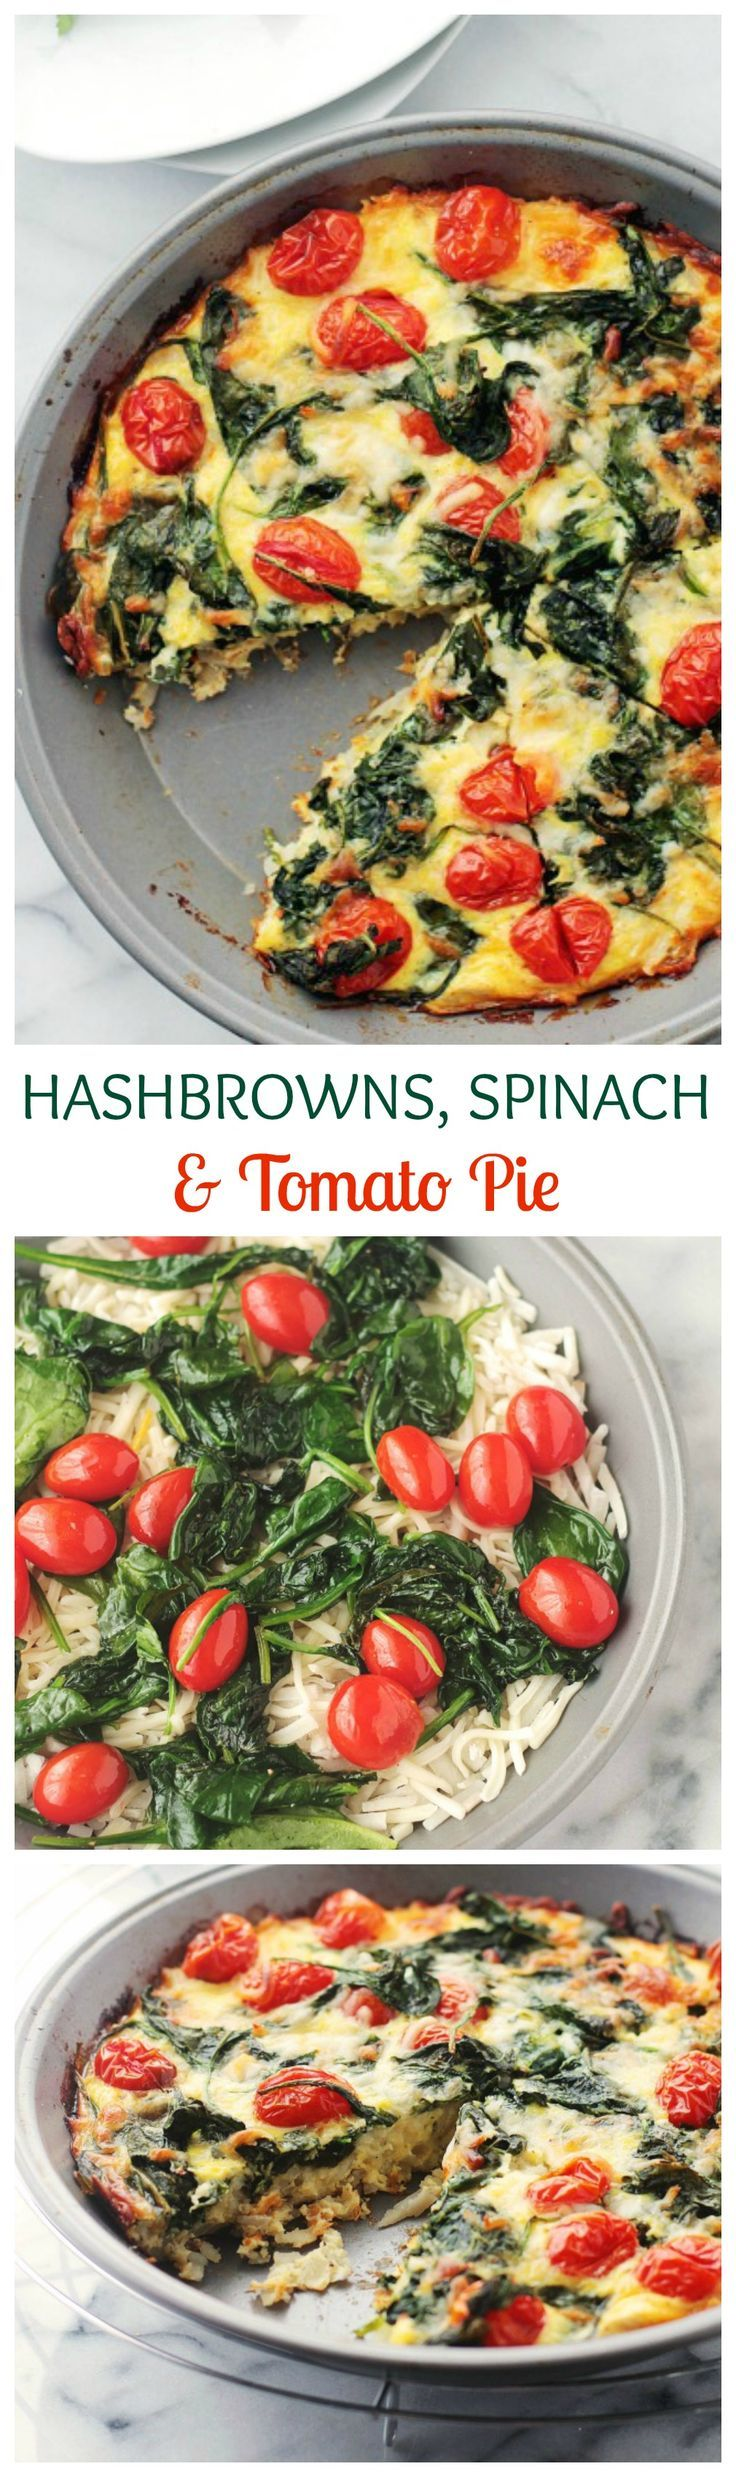 Hashbrowns, Spinach and Tomato Pie Recipe